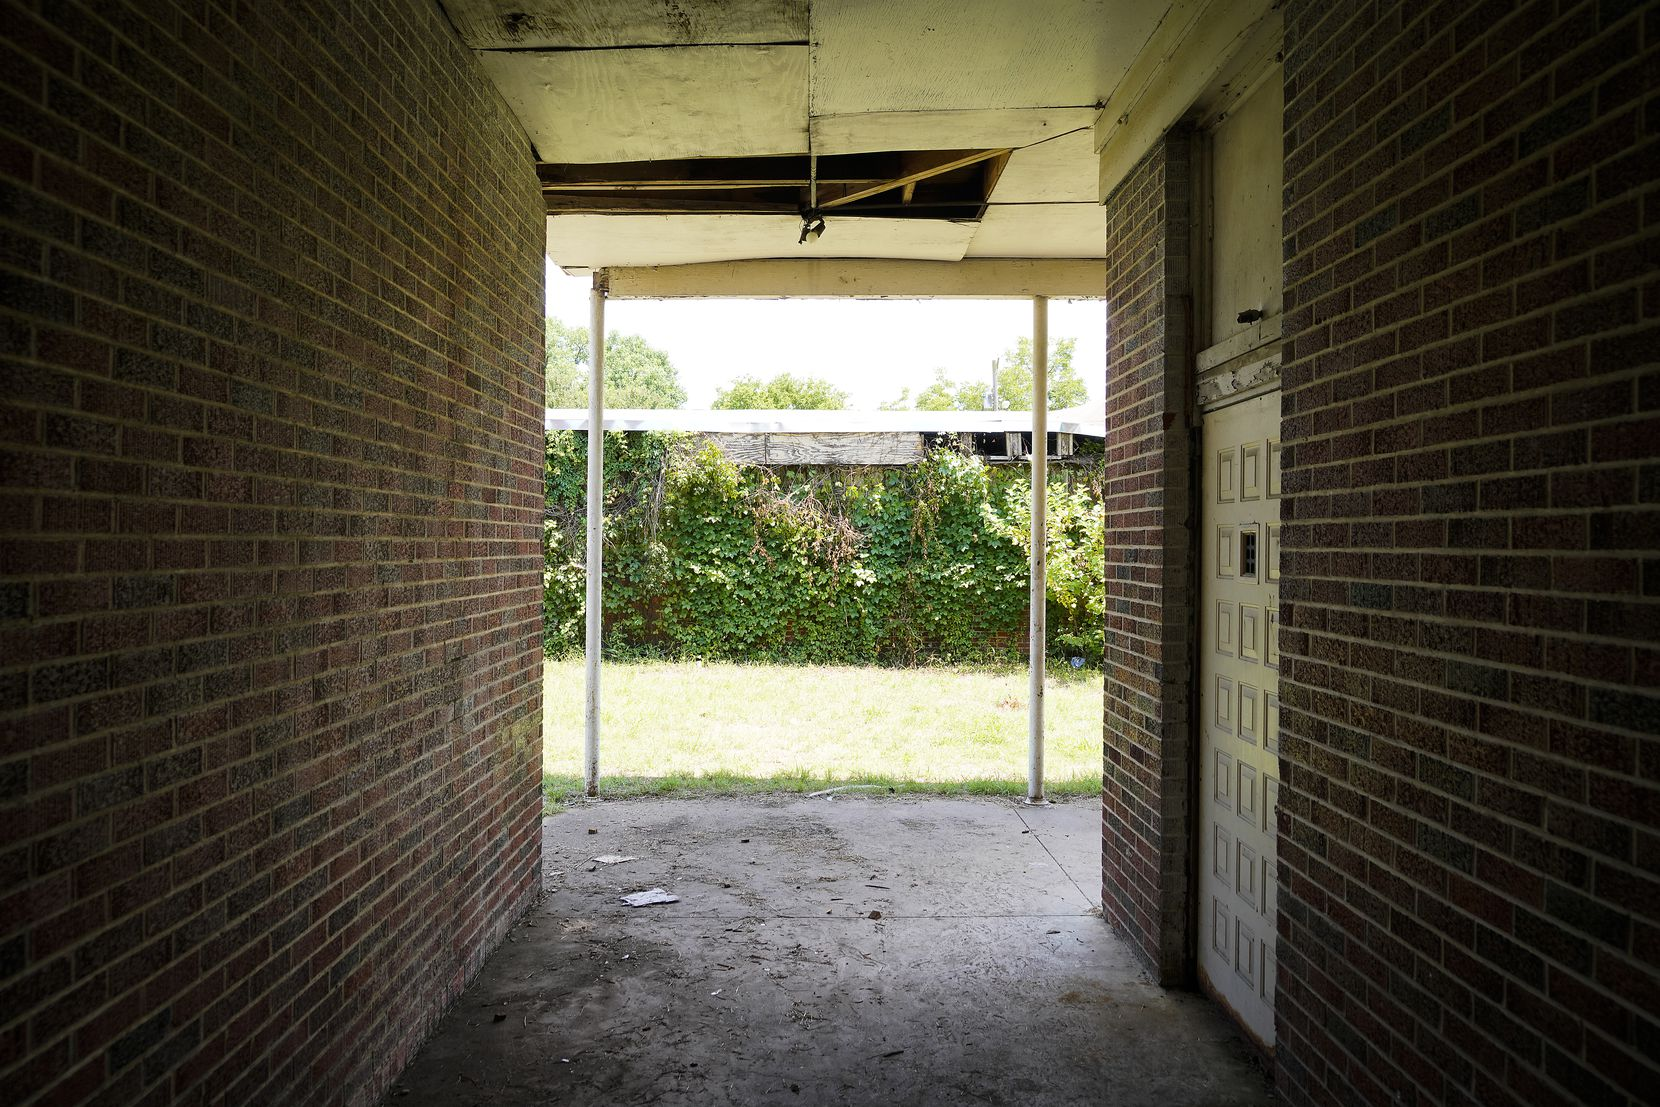 Dense growth covers a wall at the former Melissa Pierce School in Joppa on Thursday, July 8, 2021. The school opened in 1953 as a segregated school, a year before Brown vs. Board of Education, and remained open until 1968.